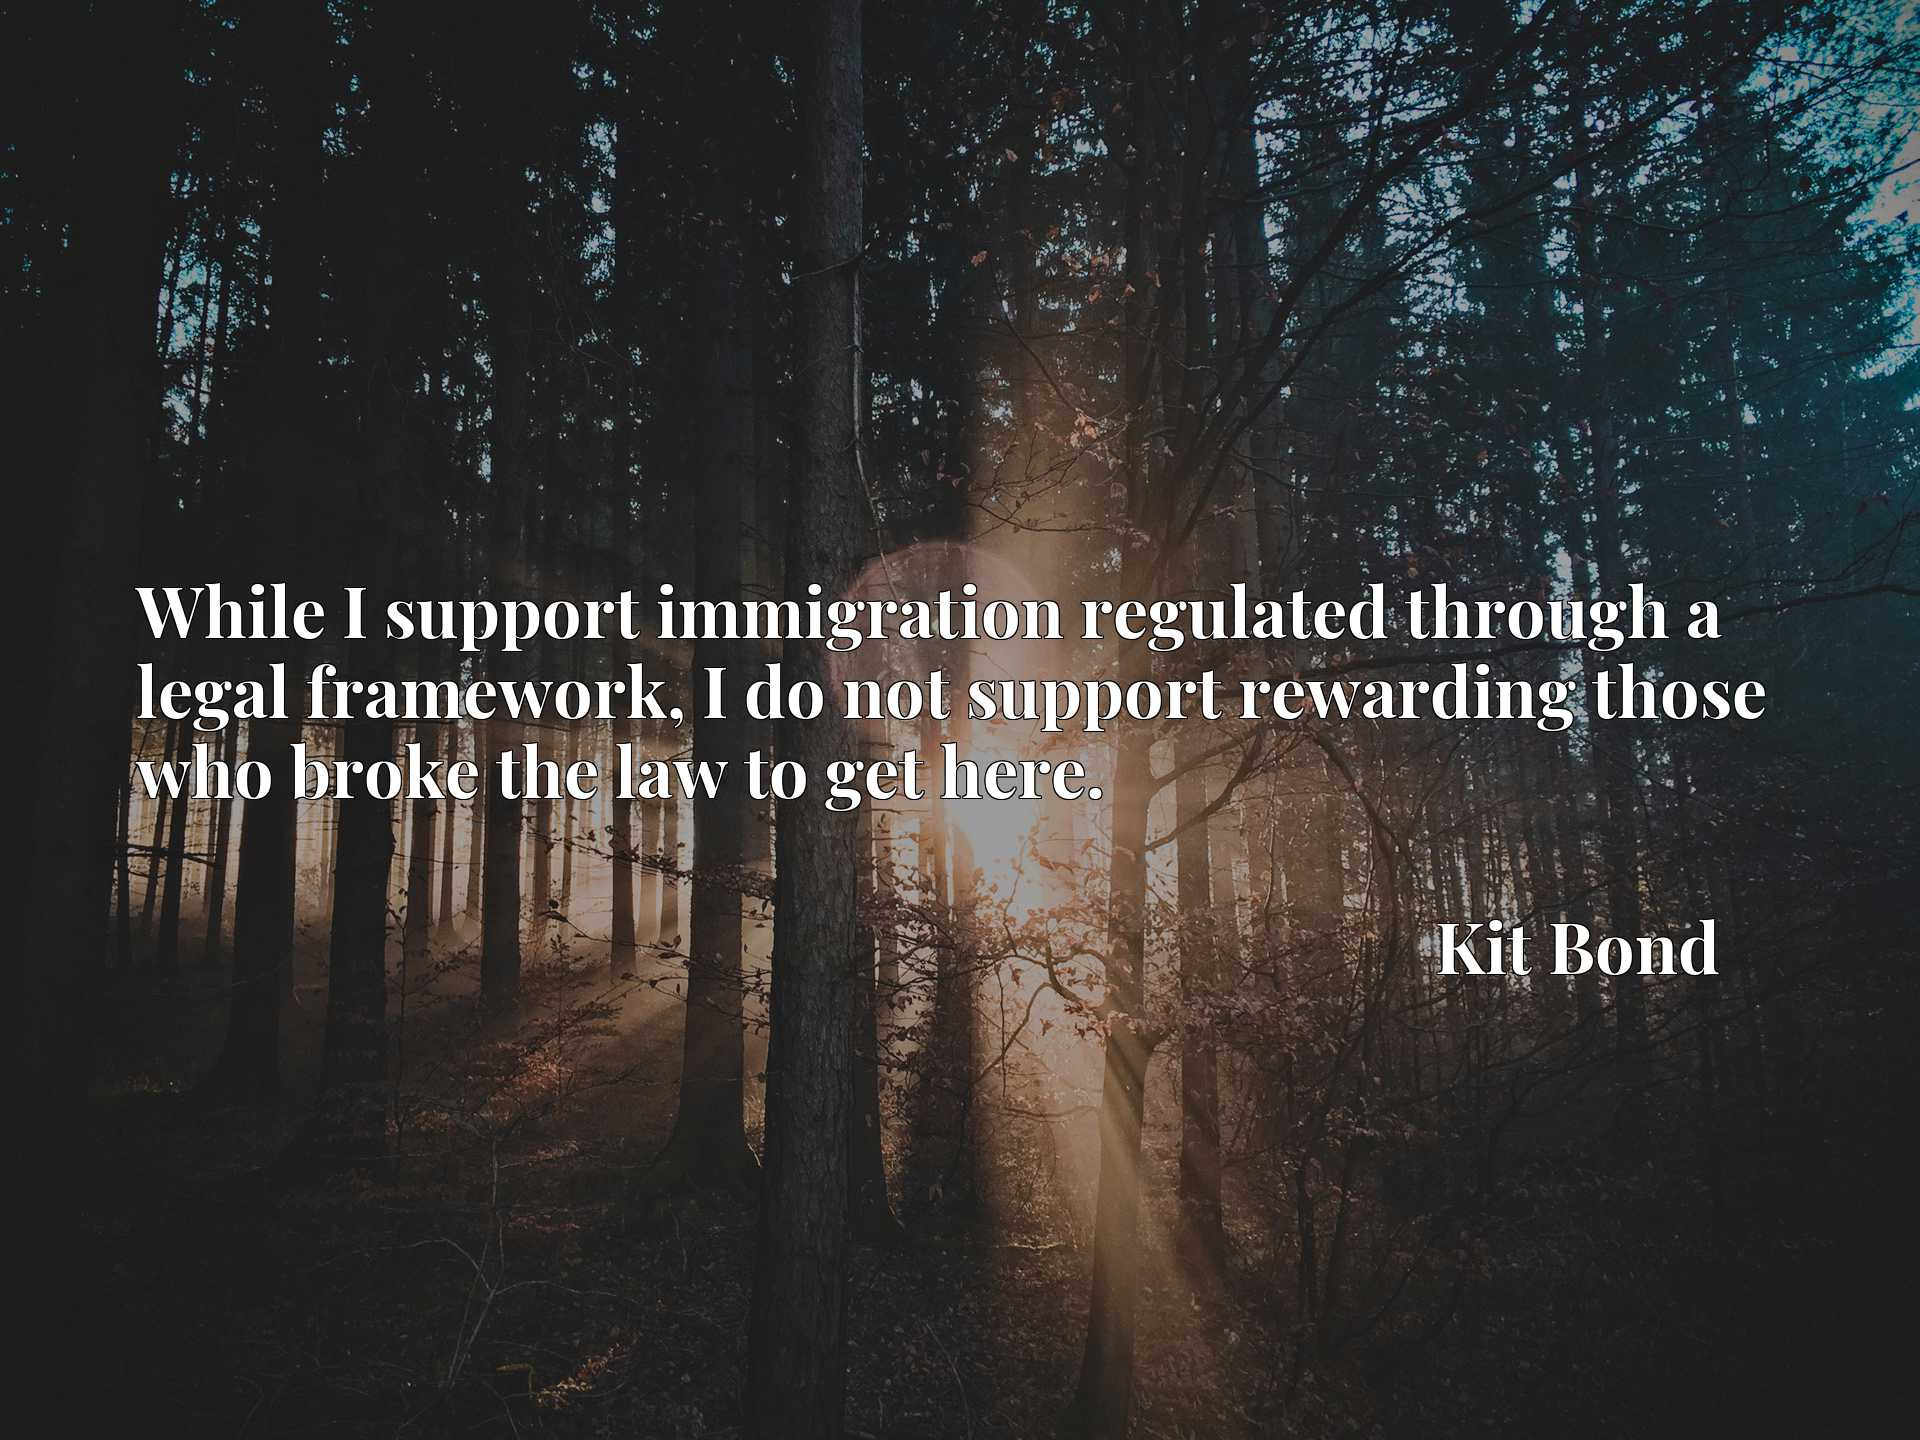 Quote Picture :While I support immigration regulated through a legal framework, I do not support rewarding those who broke the law to get here.